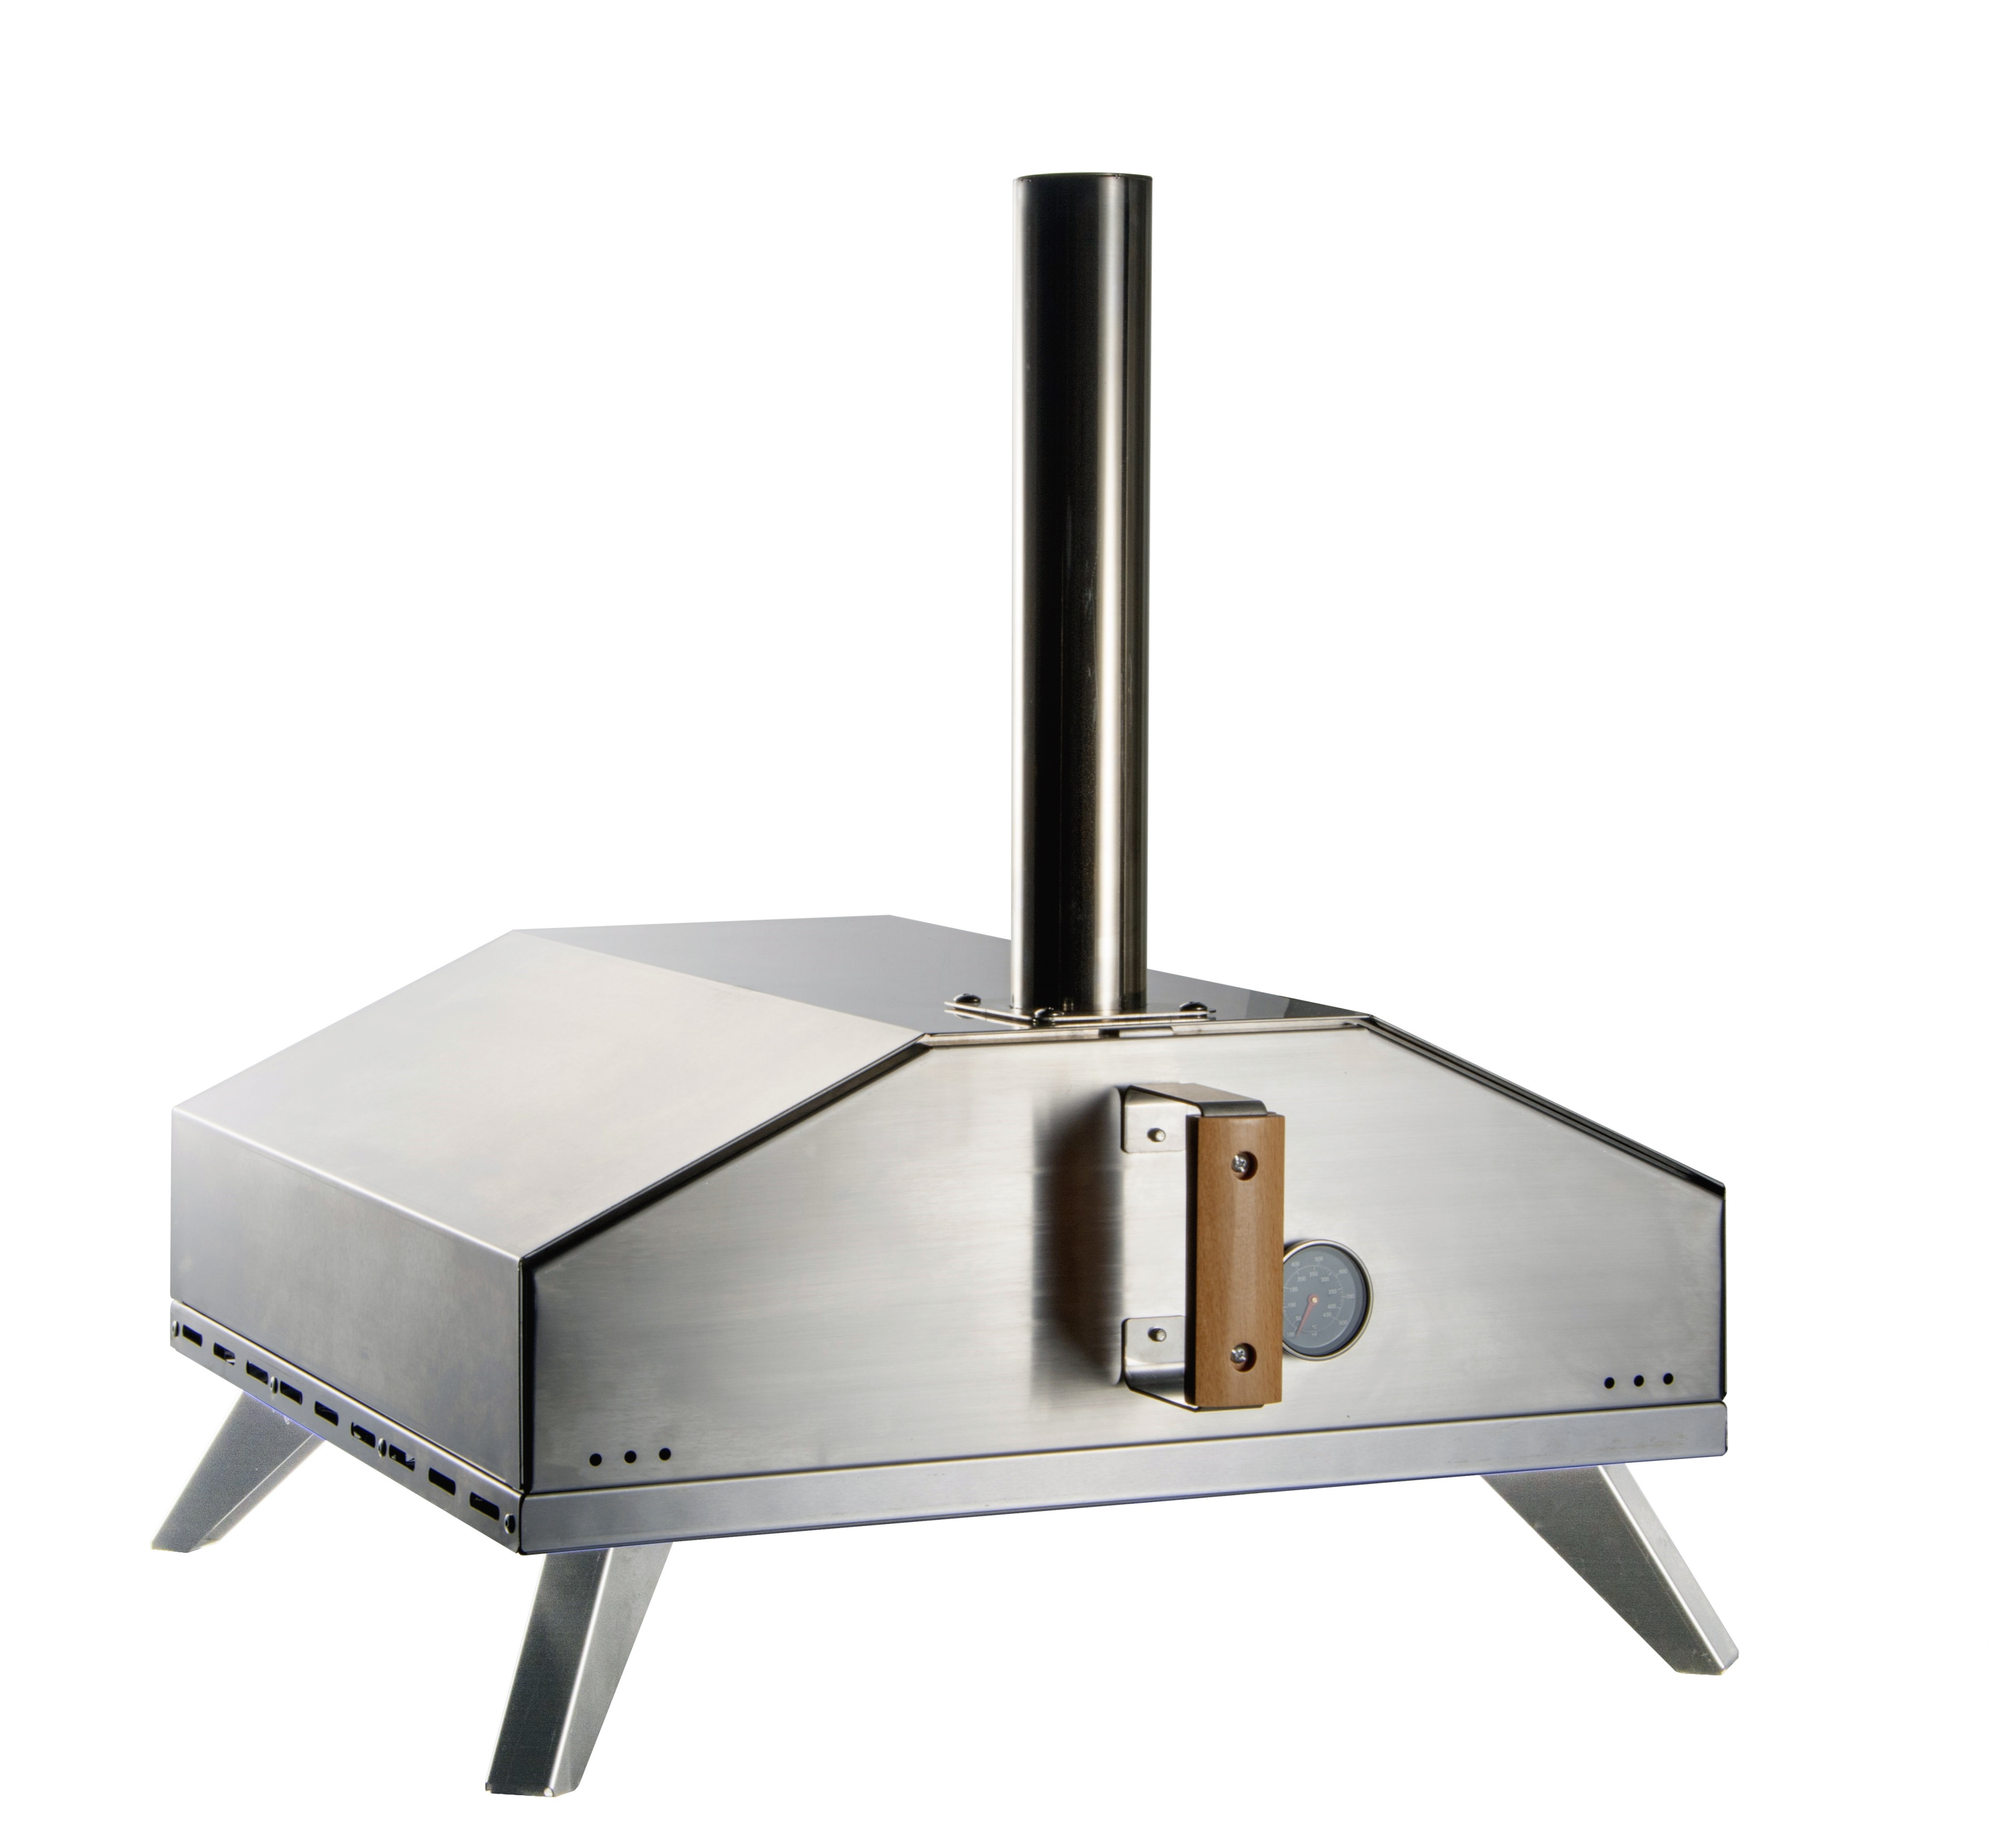 16 Inch Gas Pizza Oven for Outdoor